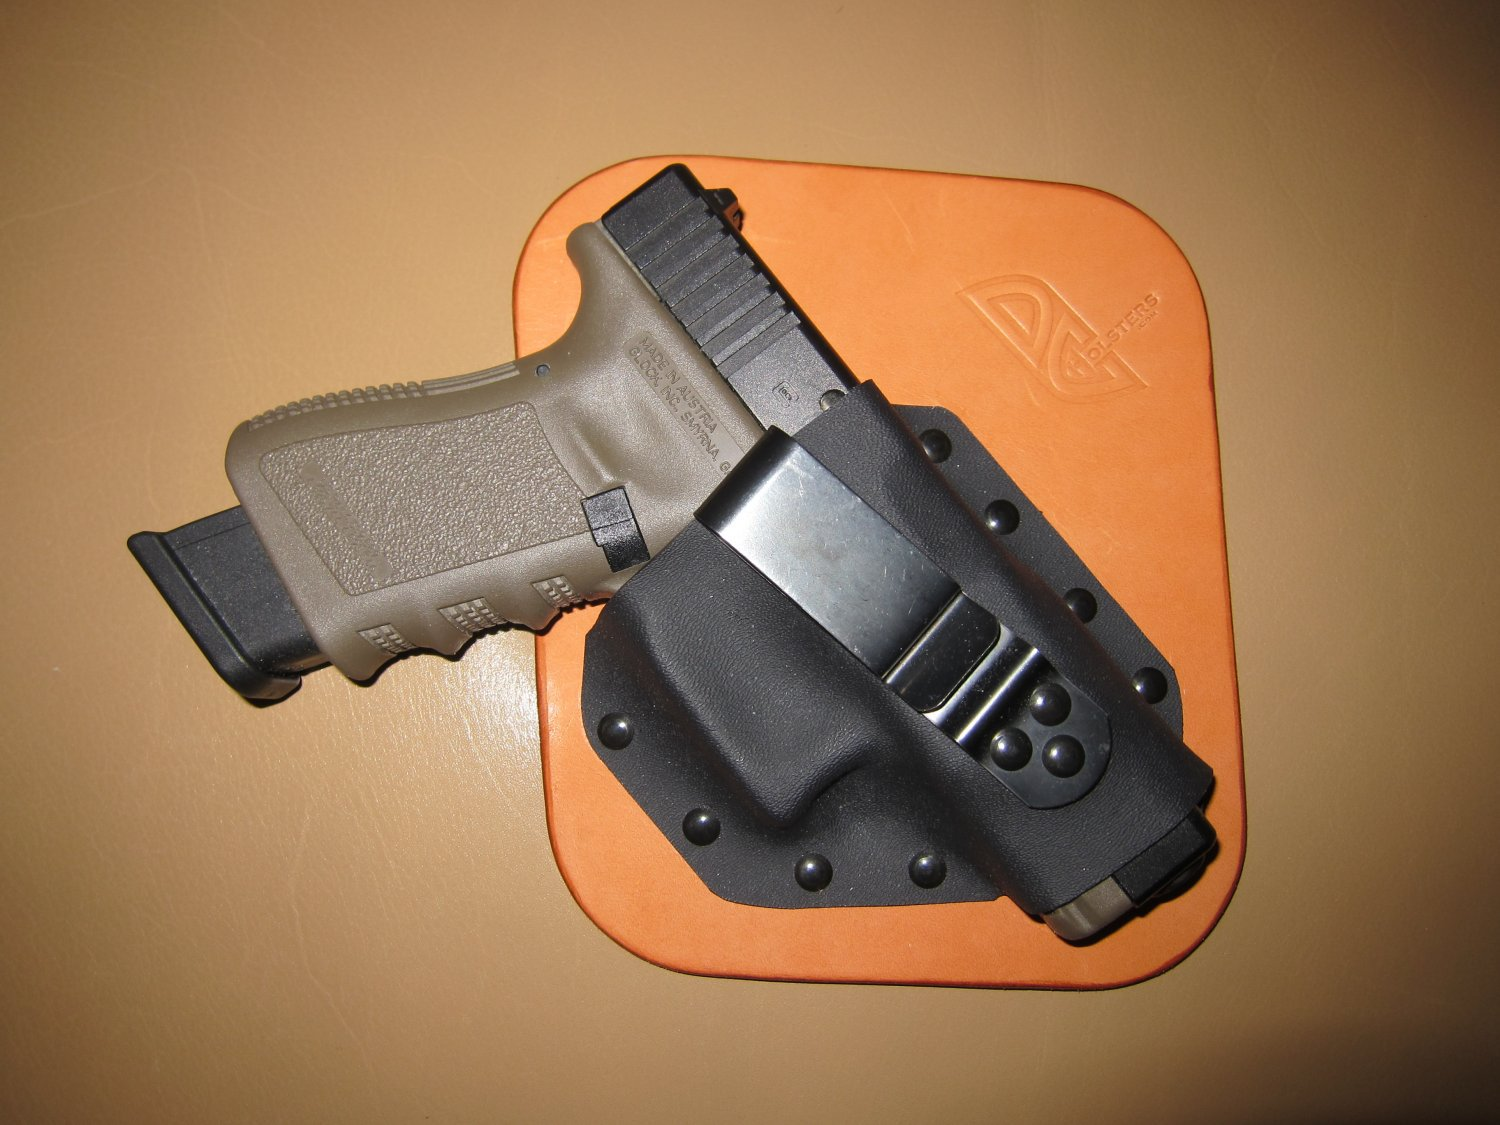 <!--:en-->DC Holsters Leather/Kydex Hybrid Ultra-Concealment Tactical Pistol Holsters for Concealed Carry (CCW) and Deep Cover Use: Best Ultra-Covert Inside-the-Waistband (IWB) Holsters Out There?<!--:-->